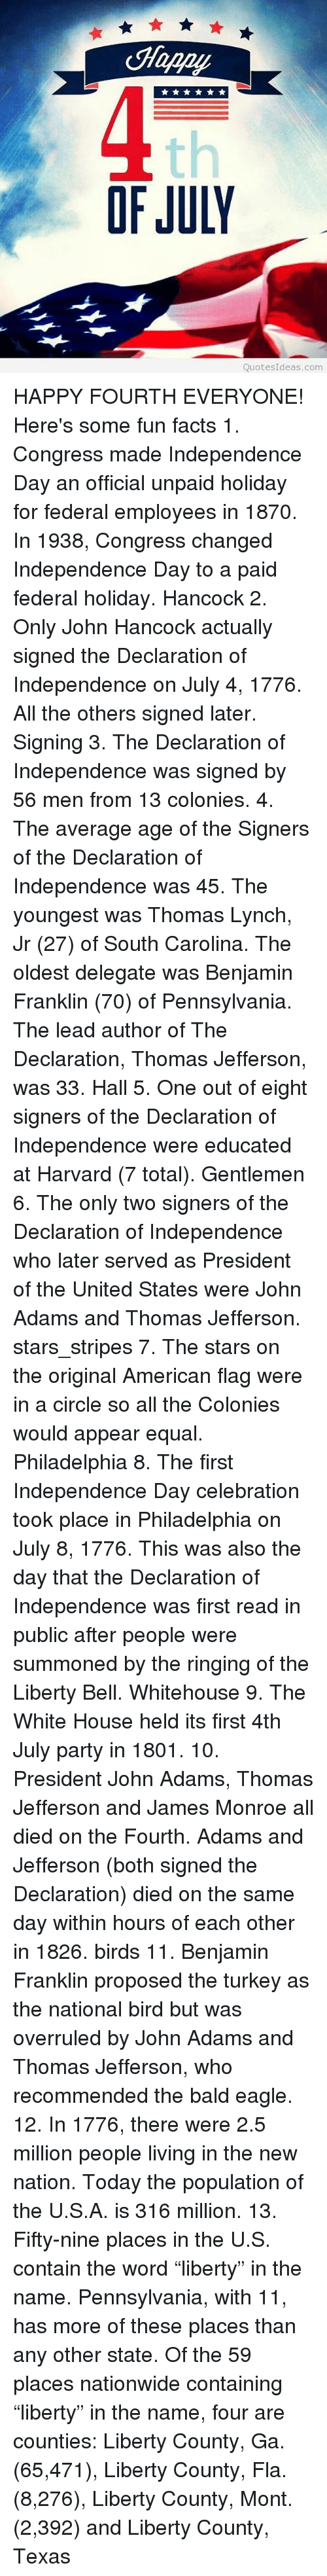 """Equalism: Happy  th  OF JULY  QuotesIdeas.com HAPPY FOURTH EVERYONE! Here's some fun facts 1. Congress made Independence Day an official unpaid holiday for federal employees in 1870. In 1938, Congress changed Independence Day to a paid federal holiday. Hancock 2. Only John Hancock actually signed the Declaration of Independence on July 4, 1776. All the others signed later. Signing 3. The Declaration of Independence was signed by 56 men from 13 colonies. 4. The average age of the Signers of the Declaration of Independence was 45. The youngest was Thomas Lynch, Jr (27) of South Carolina. The oldest delegate was Benjamin Franklin (70) of Pennsylvania. The lead author of The Declaration, Thomas Jefferson, was 33. Hall 5. One out of eight signers of the Declaration of Independence were educated at Harvard (7 total). Gentlemen 6. The only two signers of the Declaration of Independence who later served as President of the United States were John Adams and Thomas Jefferson. stars_stripes 7. The stars on the original American flag were in a circle so all the Colonies would appear equal. Philadelphia 8. The first Independence Day celebration took place in Philadelphia on July 8, 1776. This was also the day that the Declaration of Independence was first read in public after people were summoned by the ringing of the Liberty Bell. Whitehouse 9. The White House held its first 4th July party in 1801. 10. President John Adams, Thomas Jefferson and James Monroe all died on the Fourth. Adams and Jefferson (both signed the Declaration) died on the same day within hours of each other in 1826. birds 11. Benjamin Franklin proposed the turkey as the national bird but was overruled by John Adams and Thomas Jefferson, who recommended the bald eagle. 12. In 1776, there were 2.5 million people living in the new nation. Today the population of the U.S.A. is 316 million. 13. Fifty-nine places in the U.S. contain the word """"liberty"""" in the name. Pennsylvania, with 11, has more of these places th"""